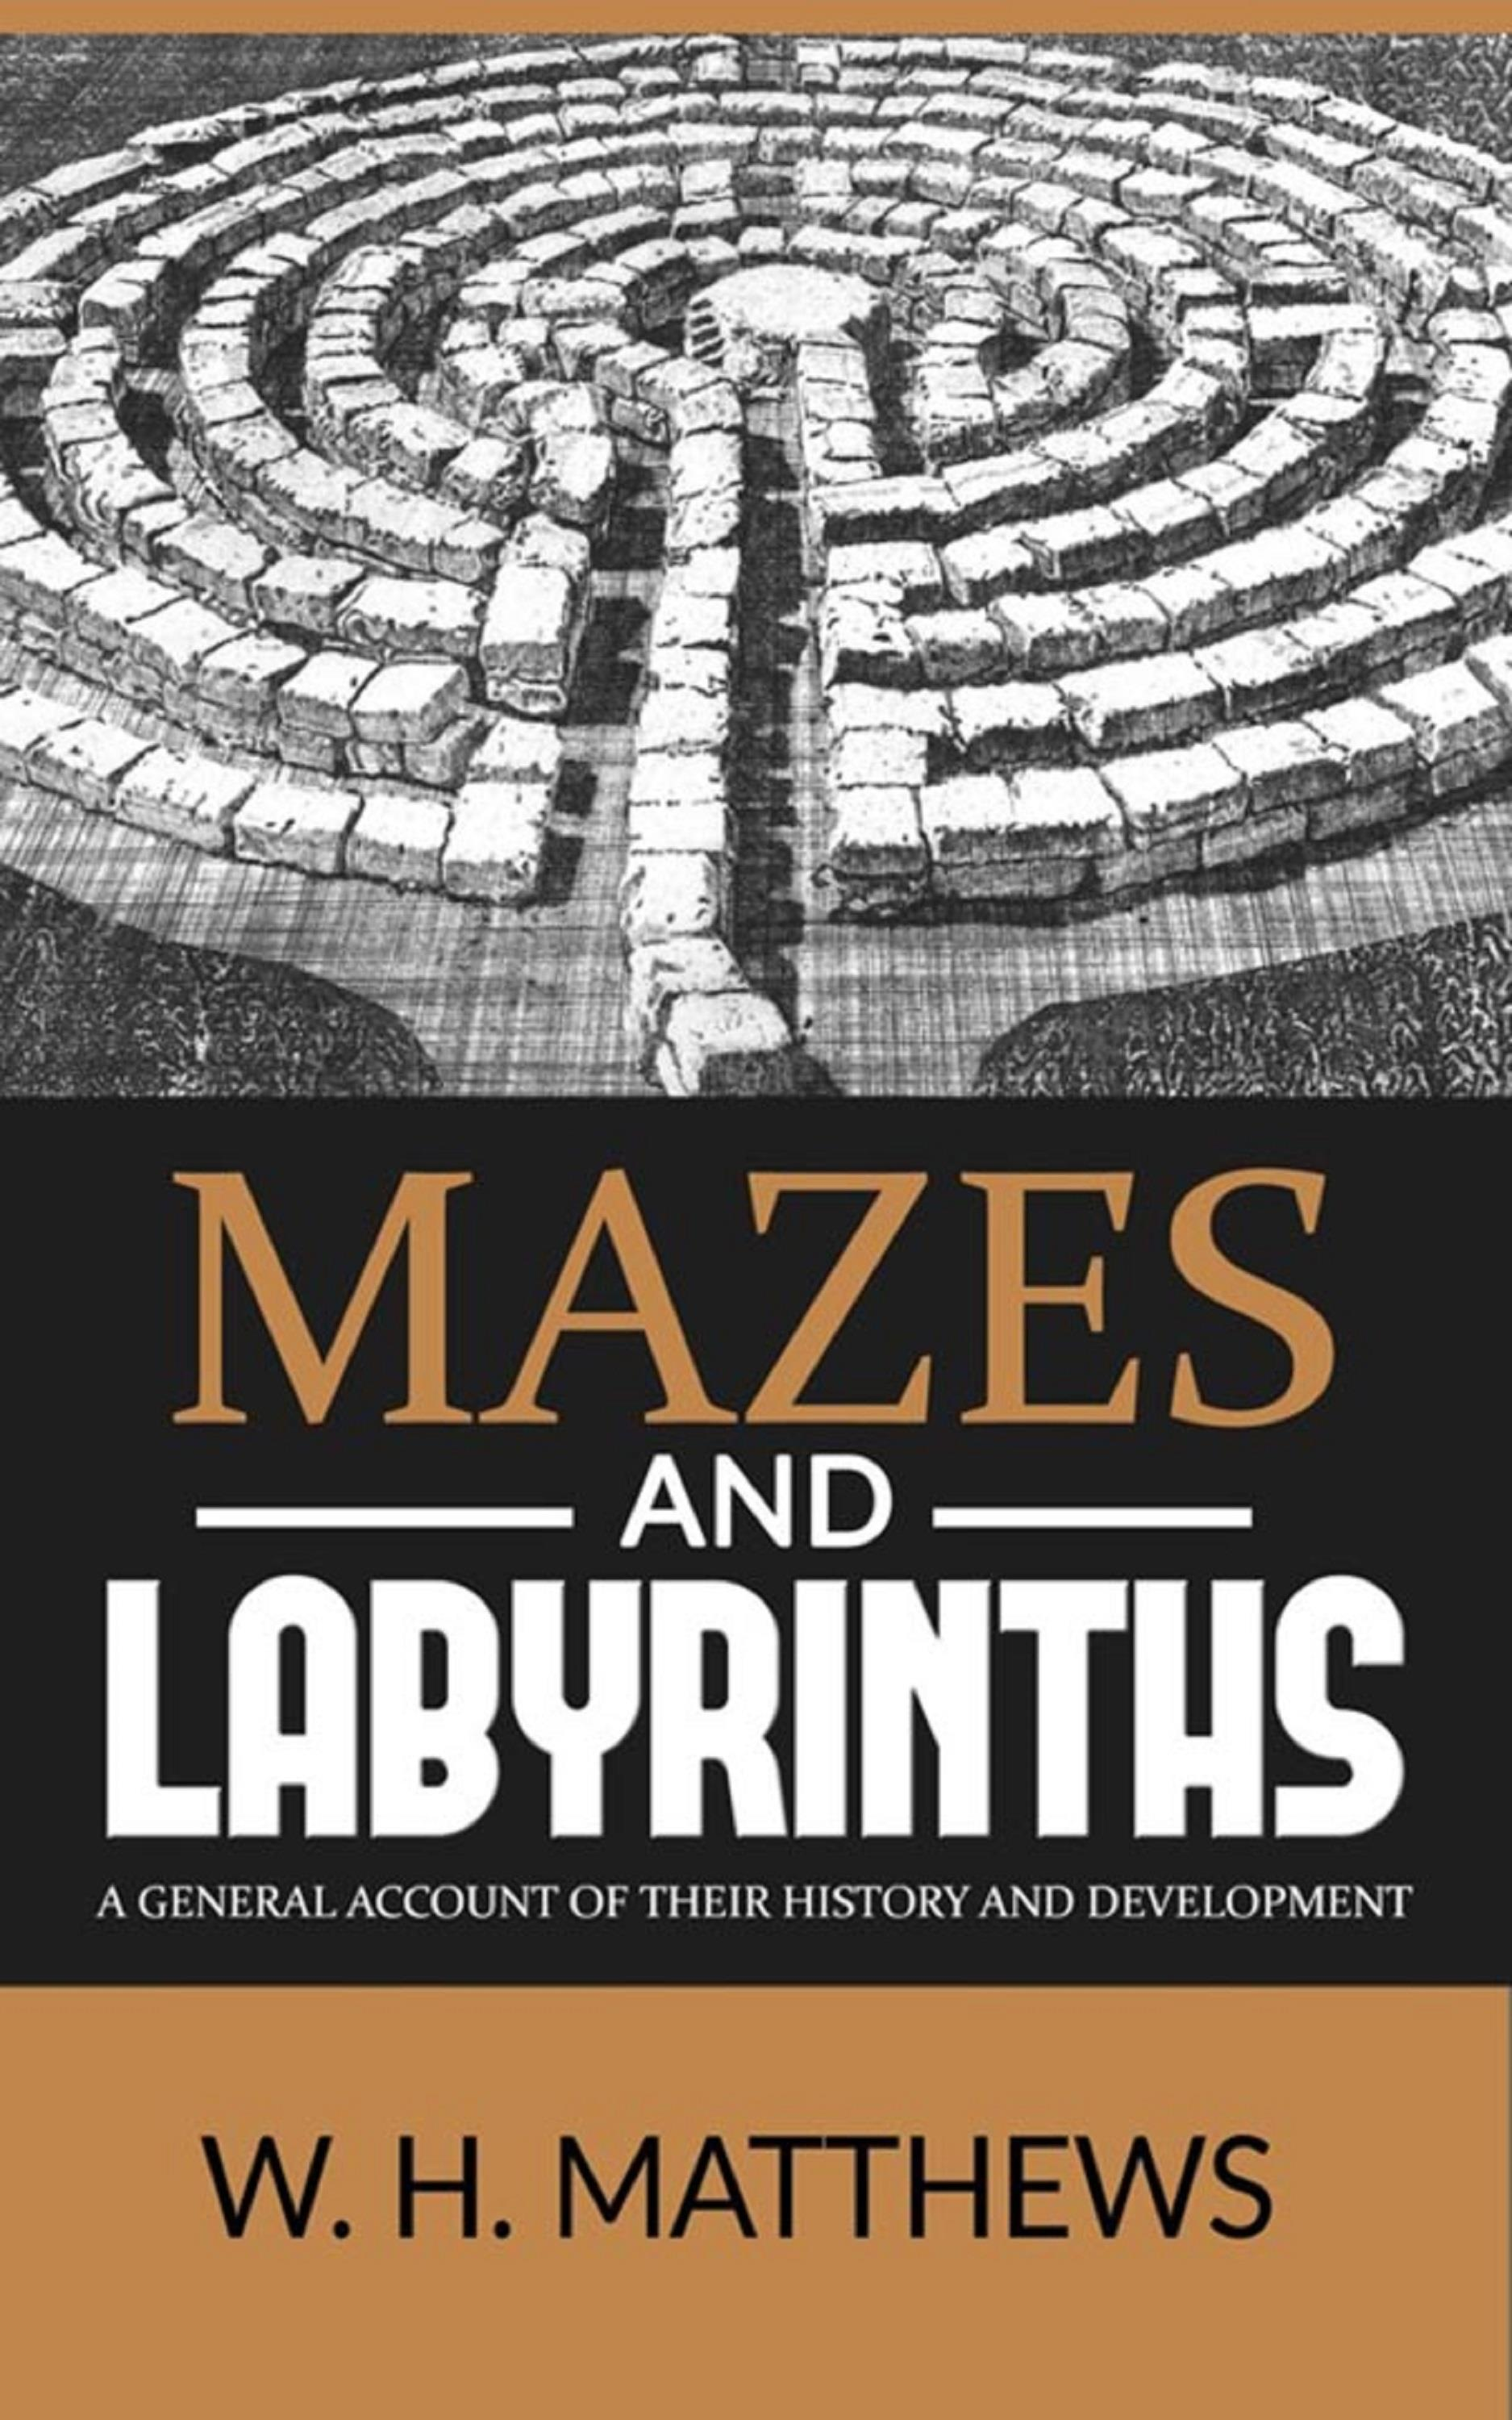 MAZES AND LABYRINTHS - A general account of their history and development